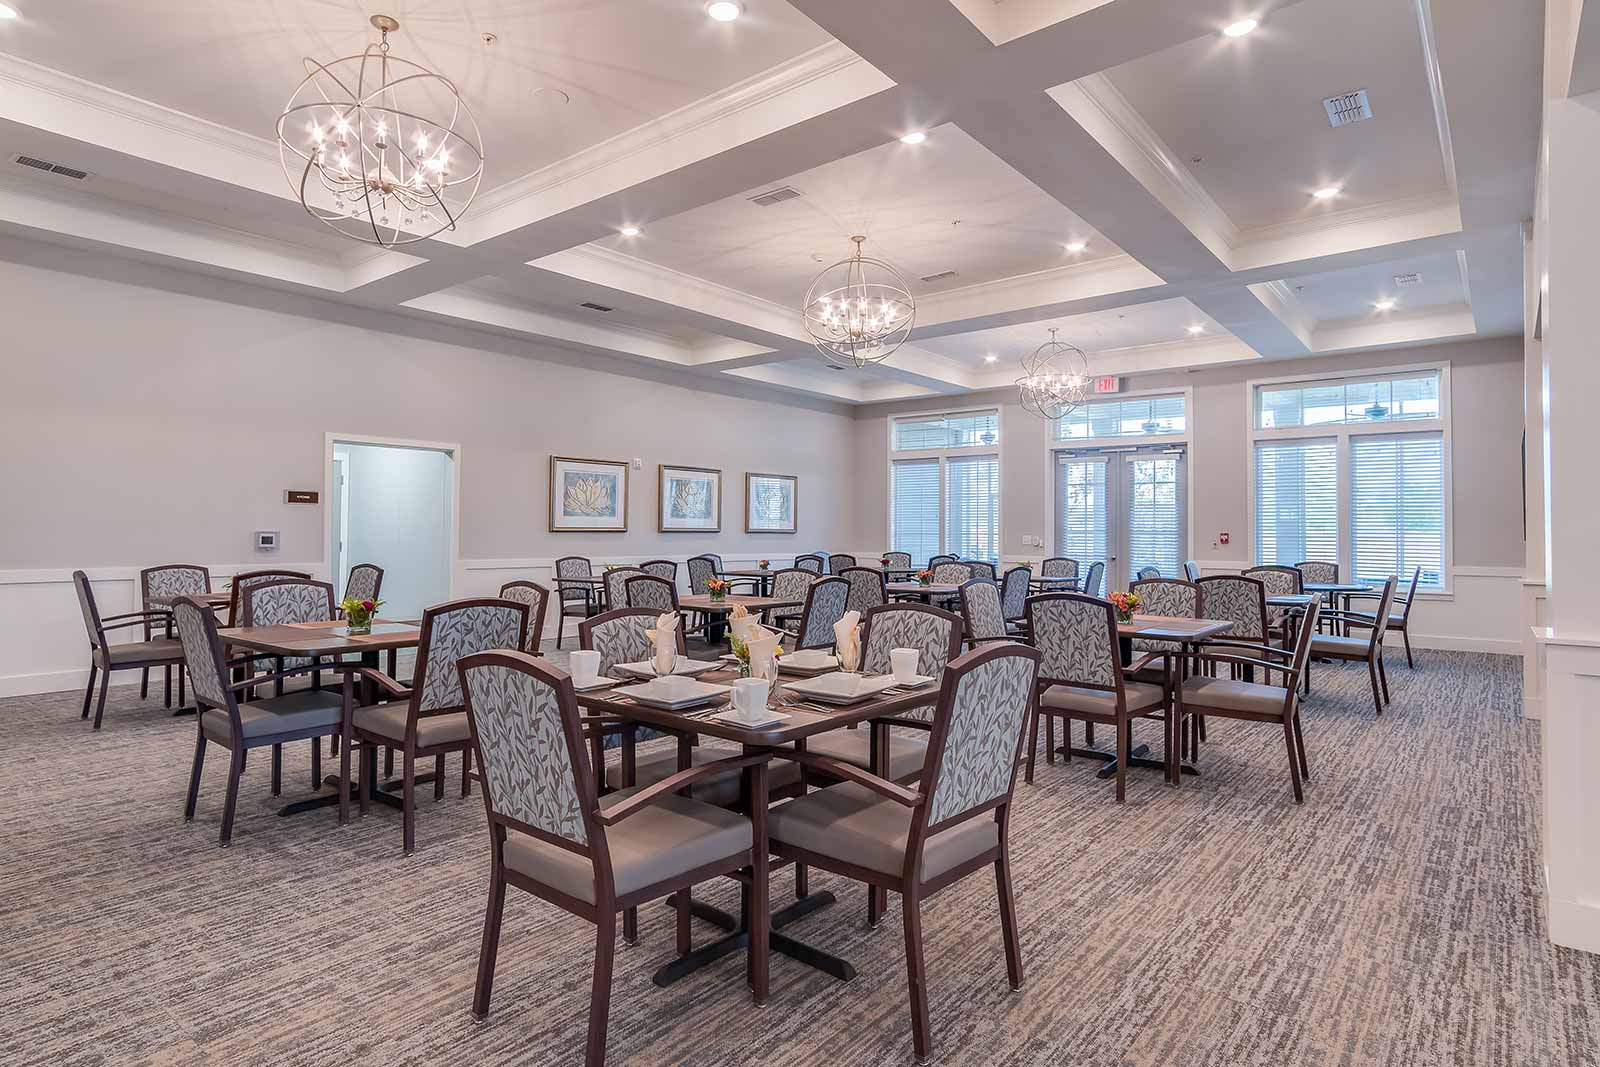 Elegant restaurant-style dining room in our Plat City FL assisted living and memory care community